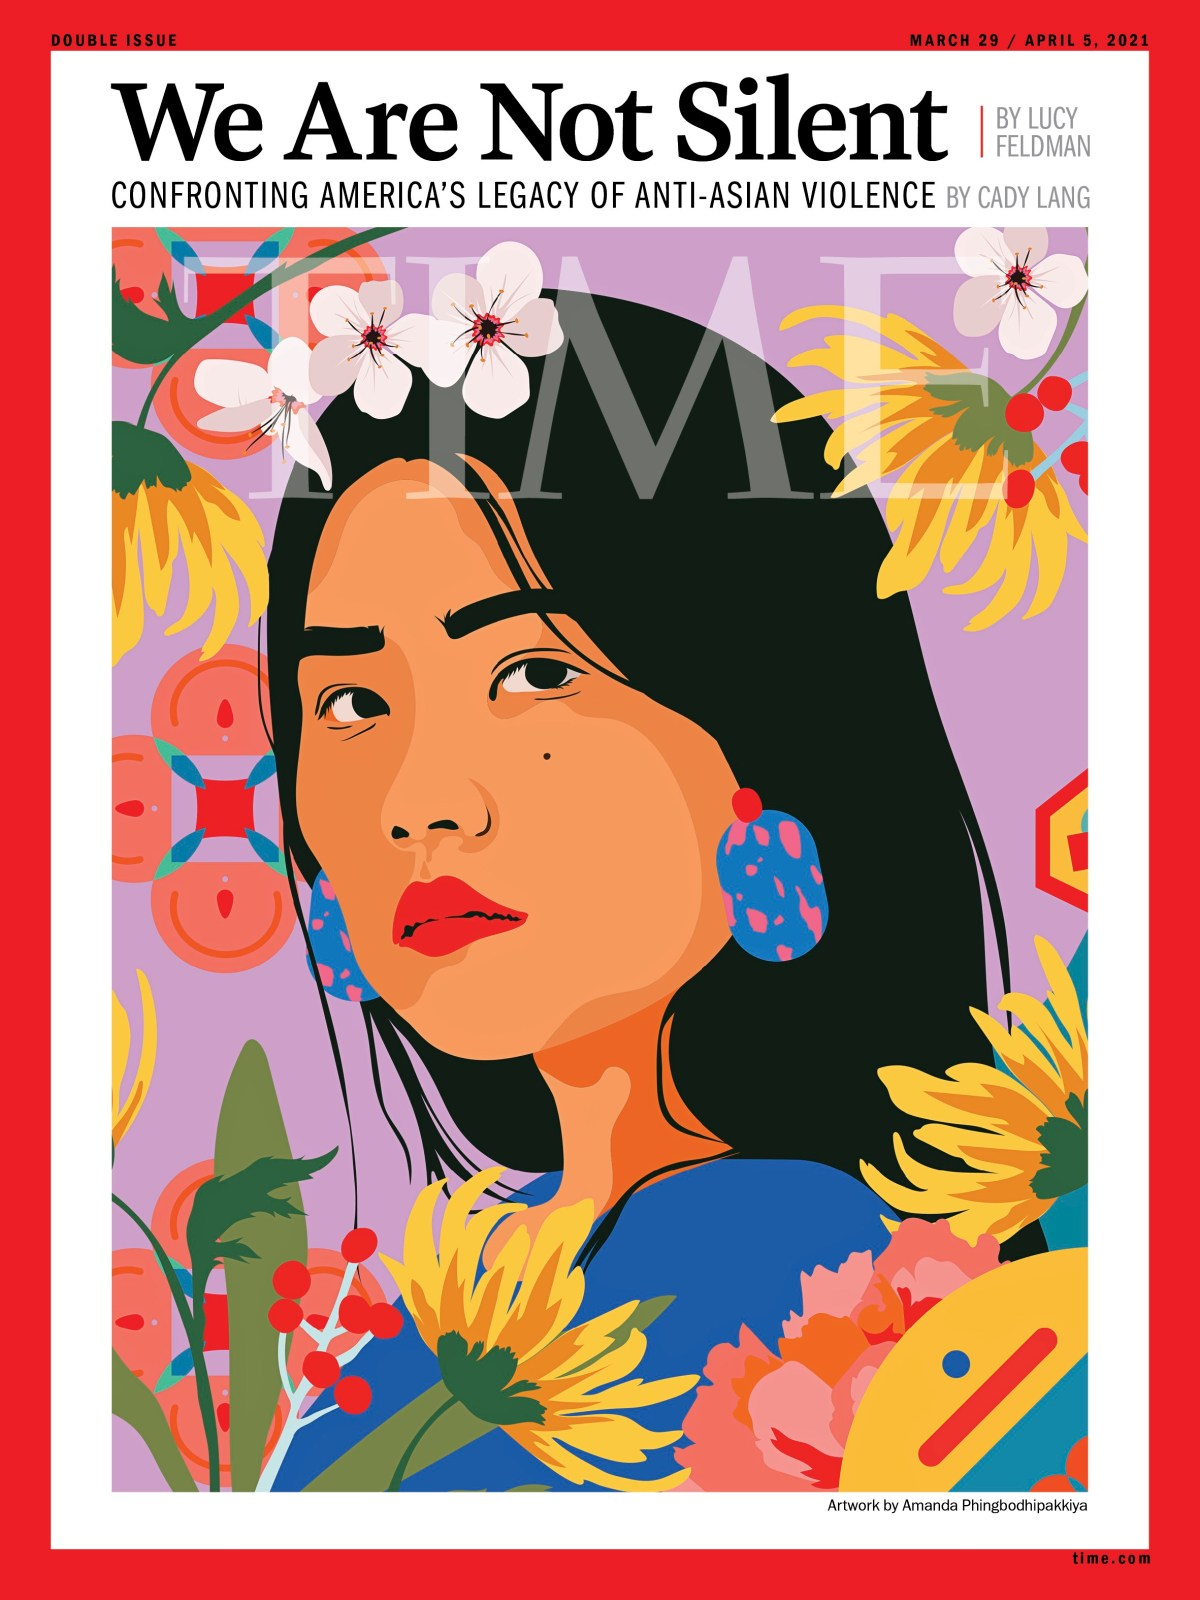 A cover of Time magazine featuring a painting of a woman of Asian or Pacific Islander descent gazing out boldly amid a festoon of flowers.